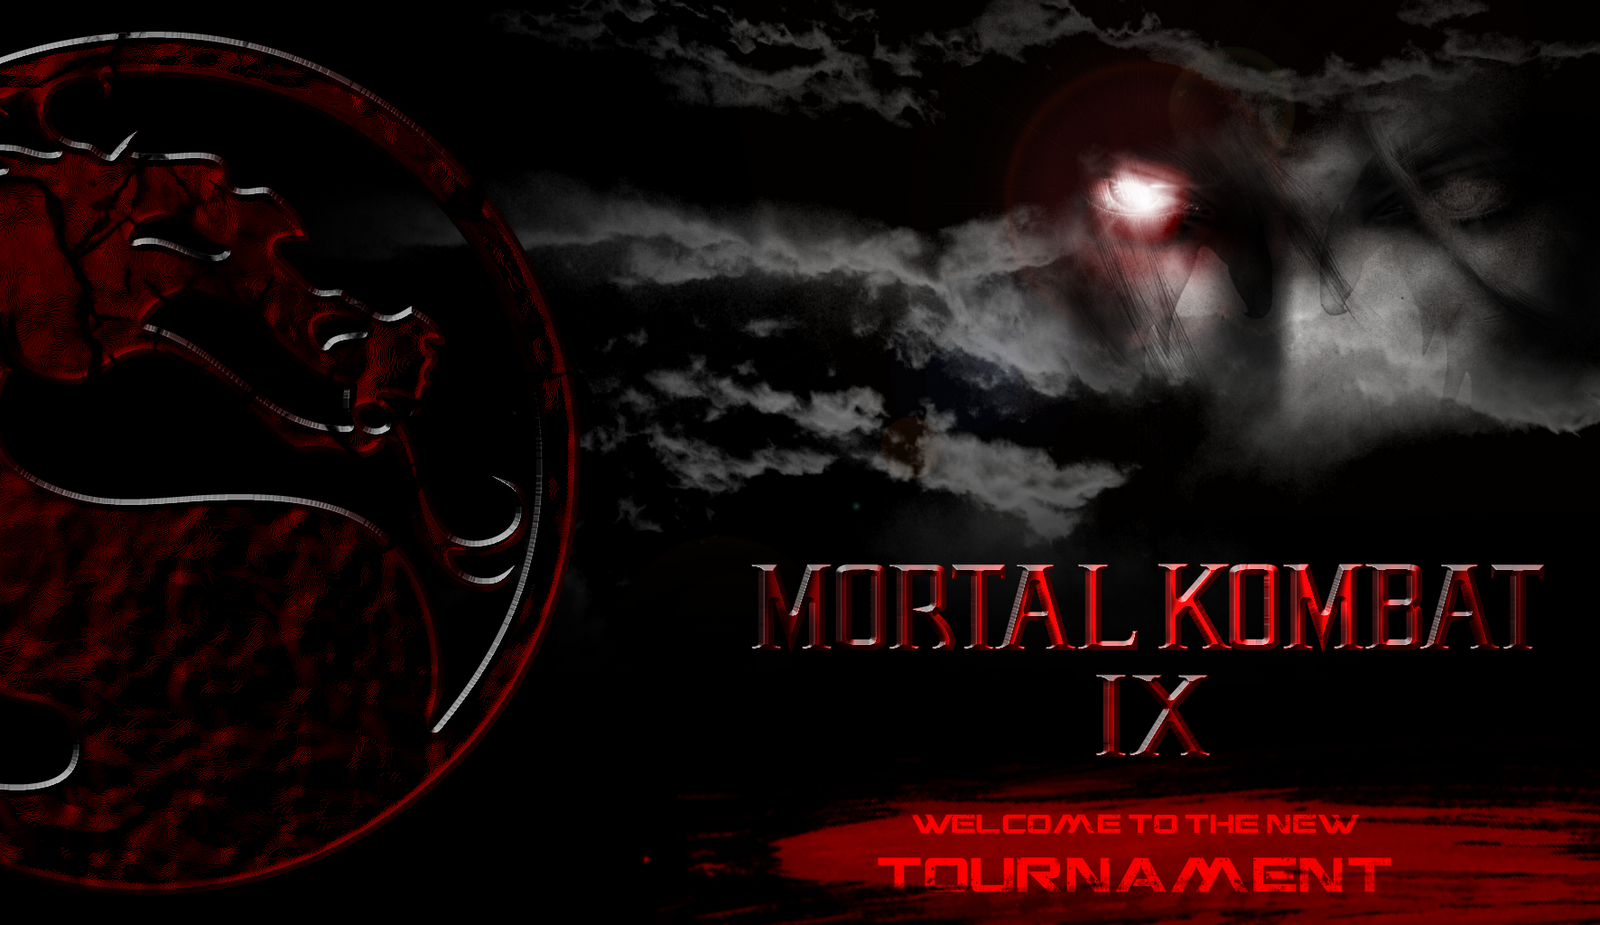 MK9 Wallpaper HD http://hd720pics.blogspot.com/2012/04/wallpaper-mk9.html